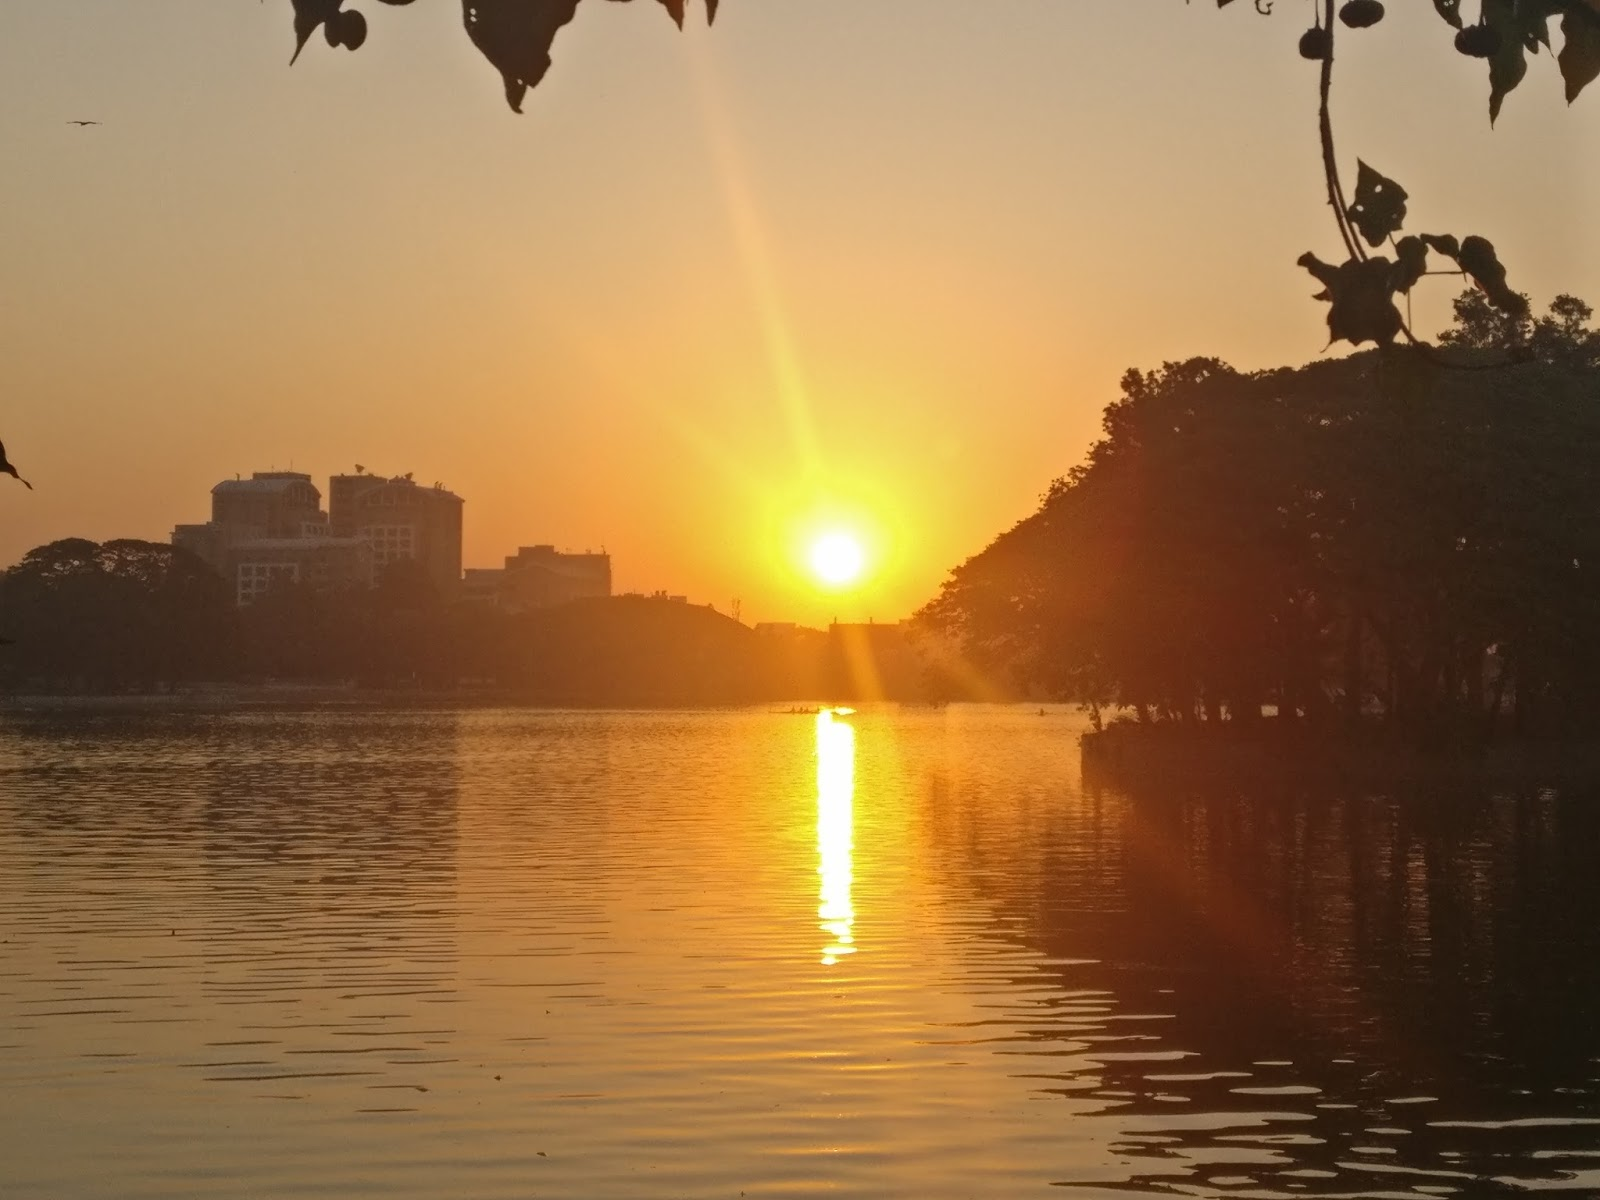 Halasuru Lake By the Morning - A Solace in the Urban Chaos